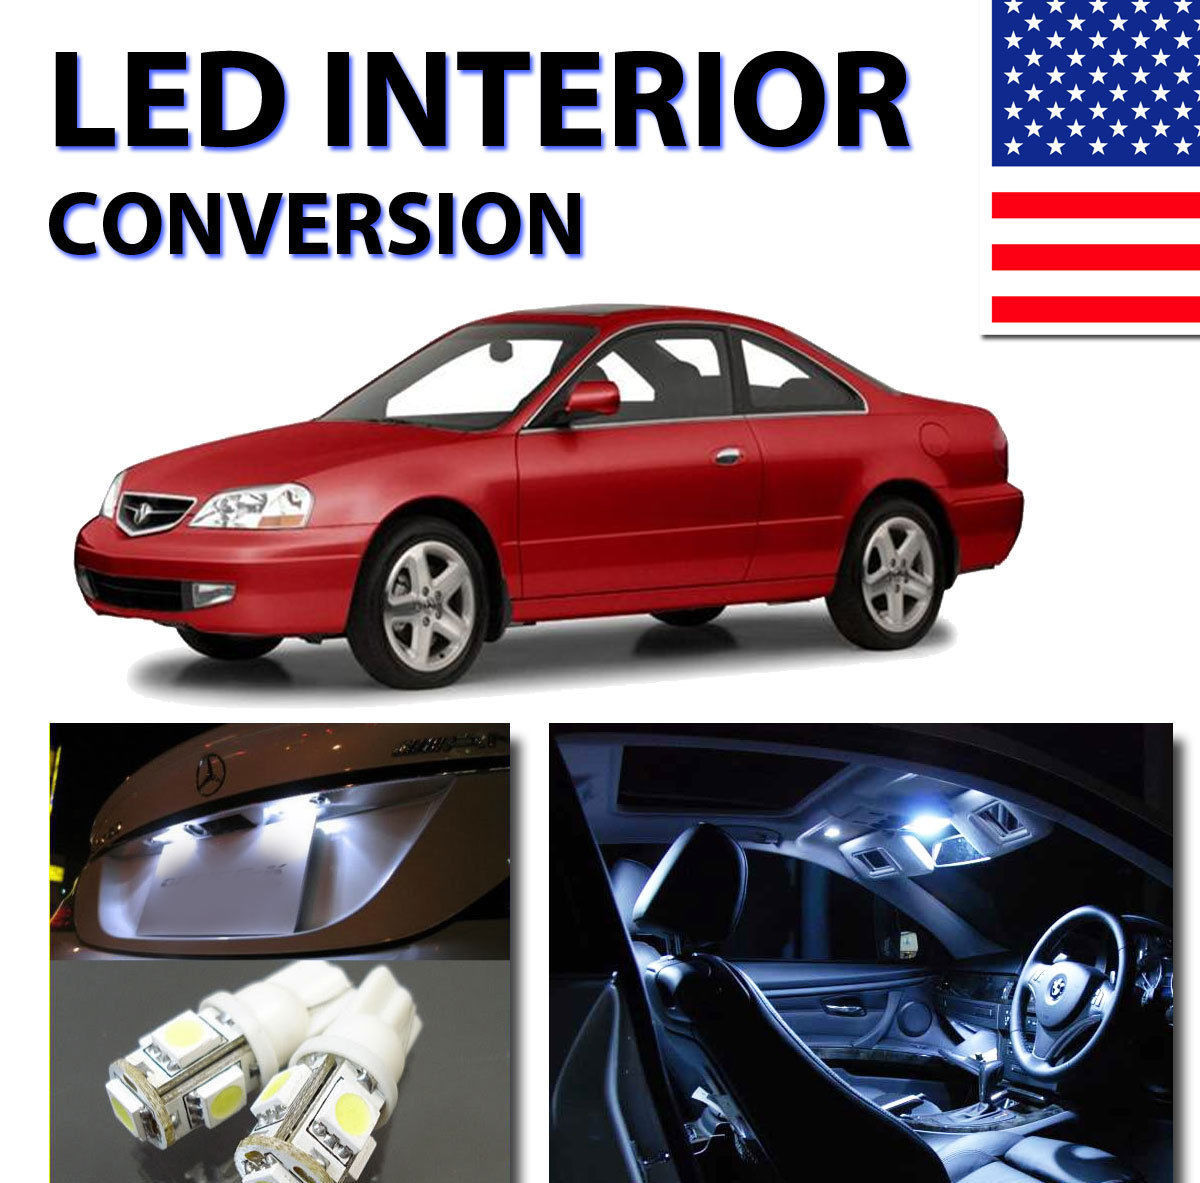 medium resolution of led interior kit for acura cl 2001 2003 price 34 99 image 1